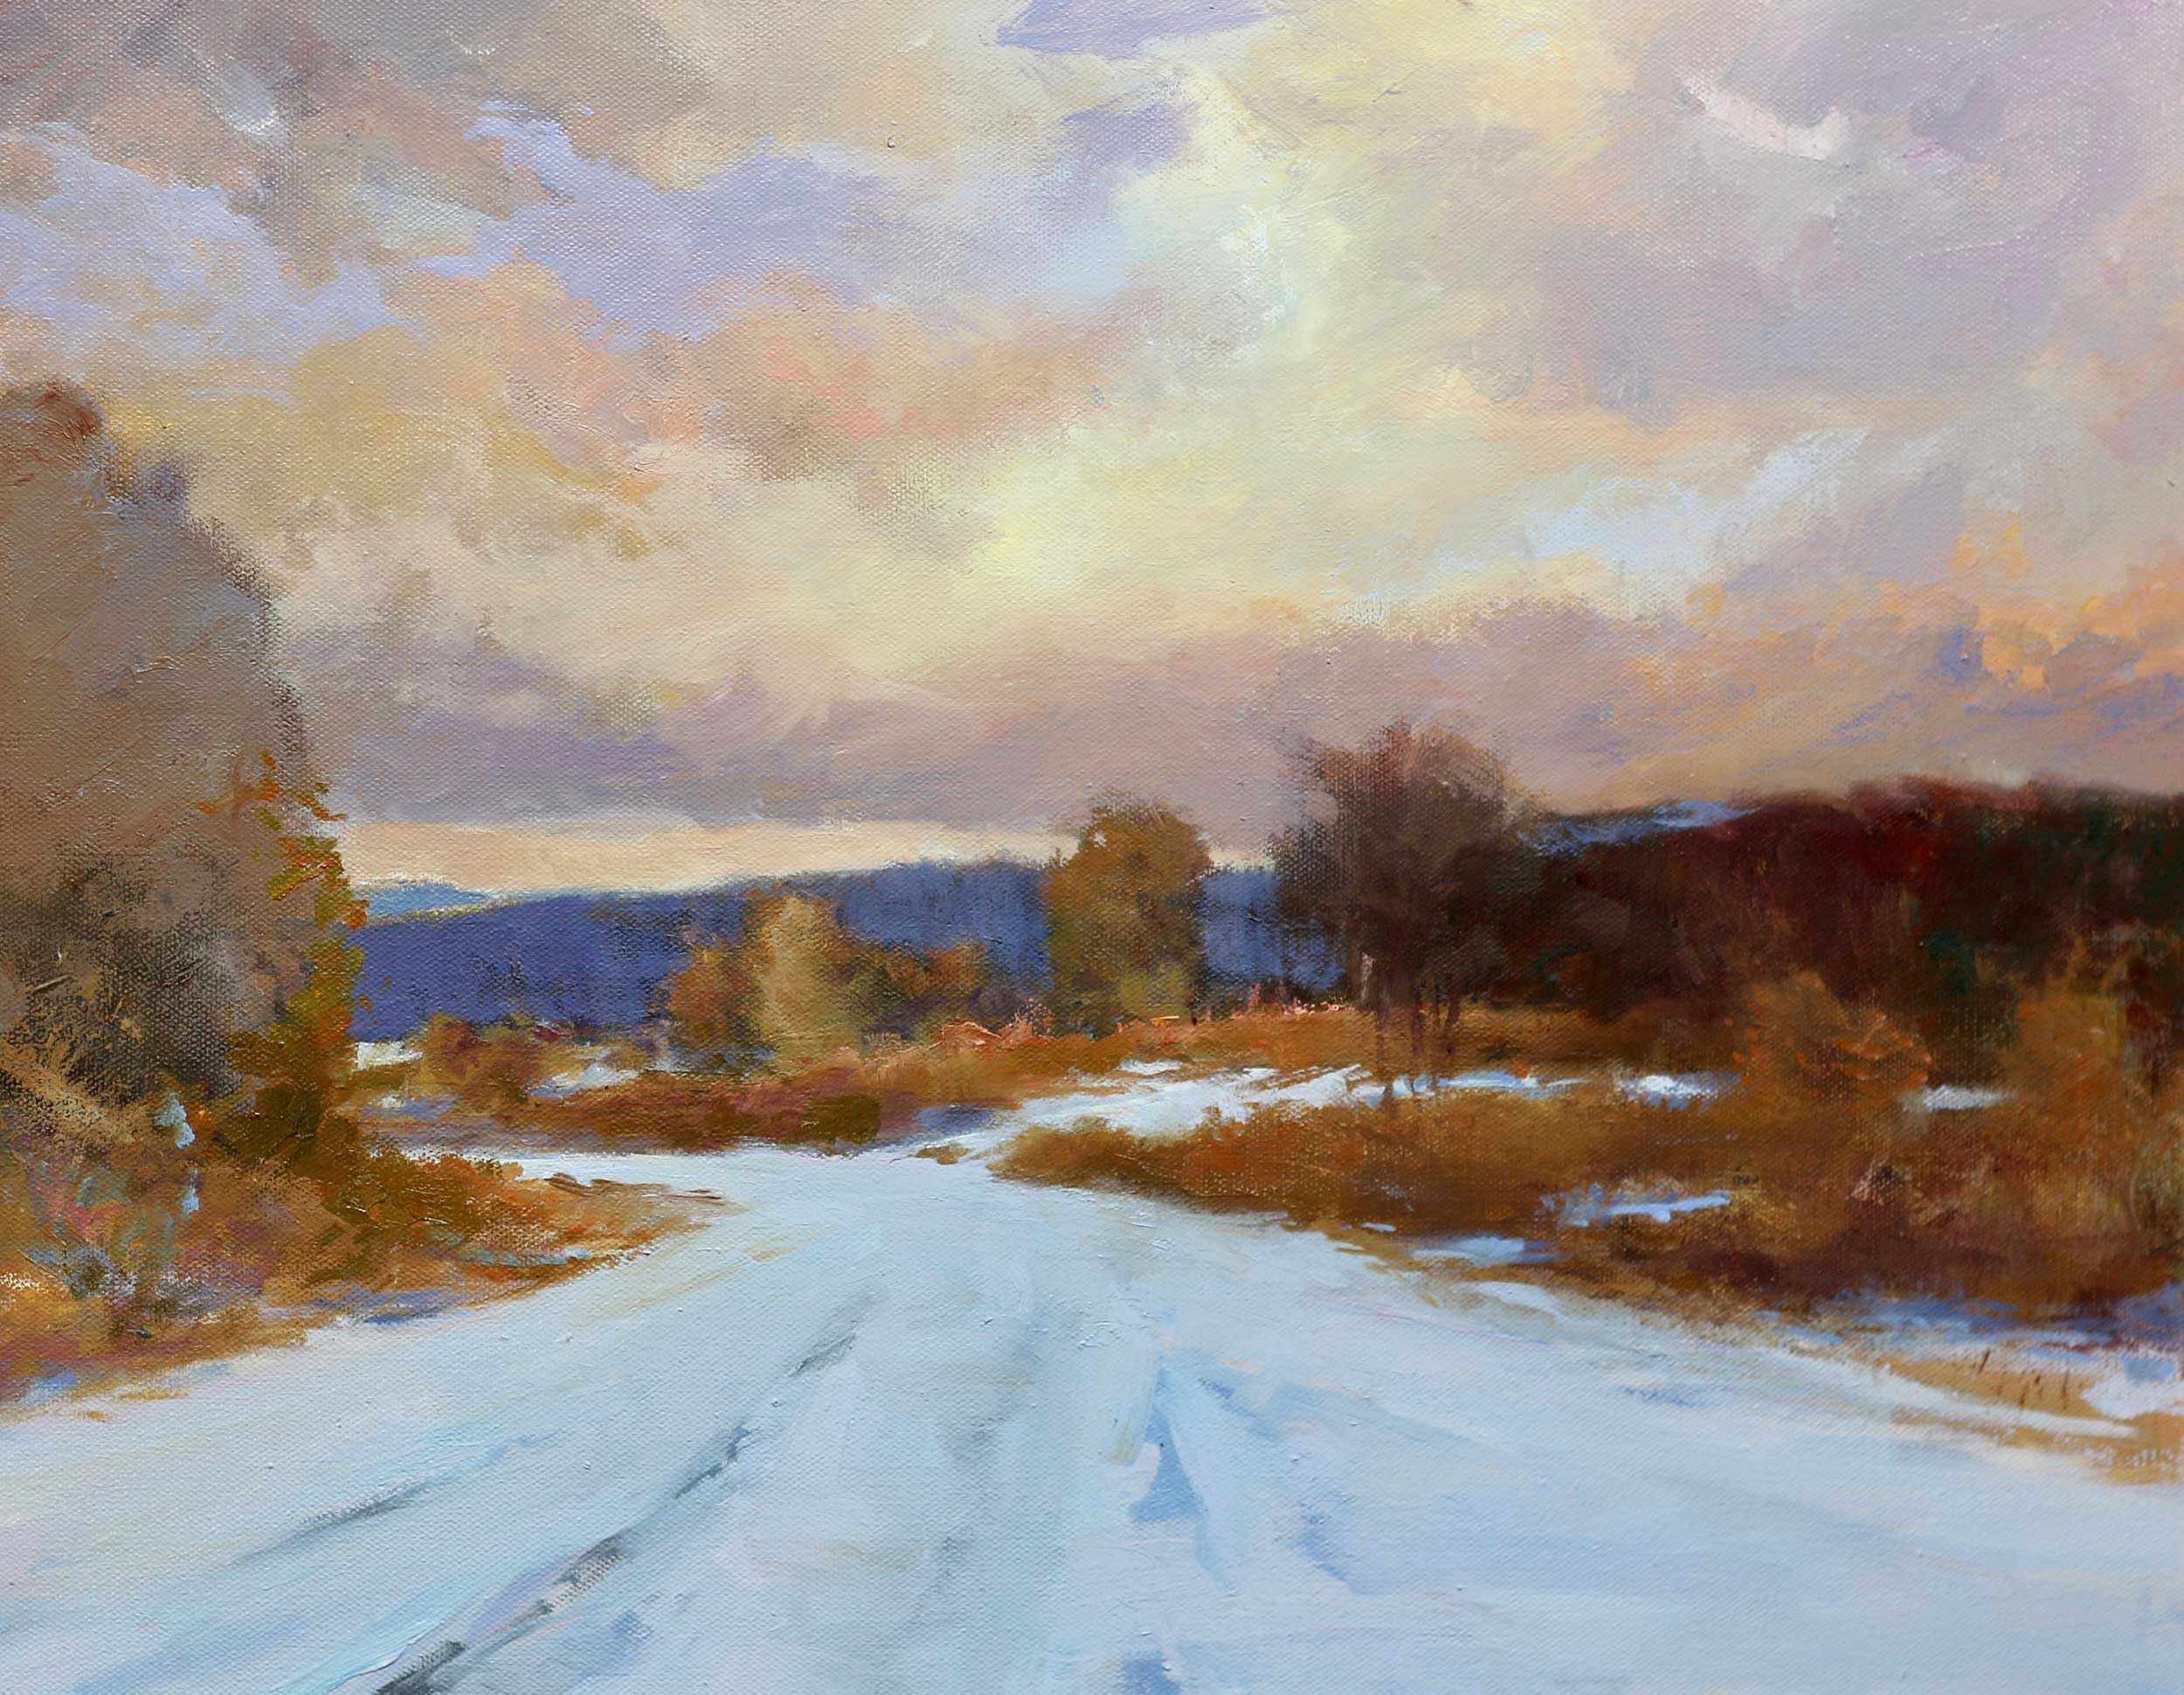 M-22 Winter Sky 16 x 20 Oil - Available